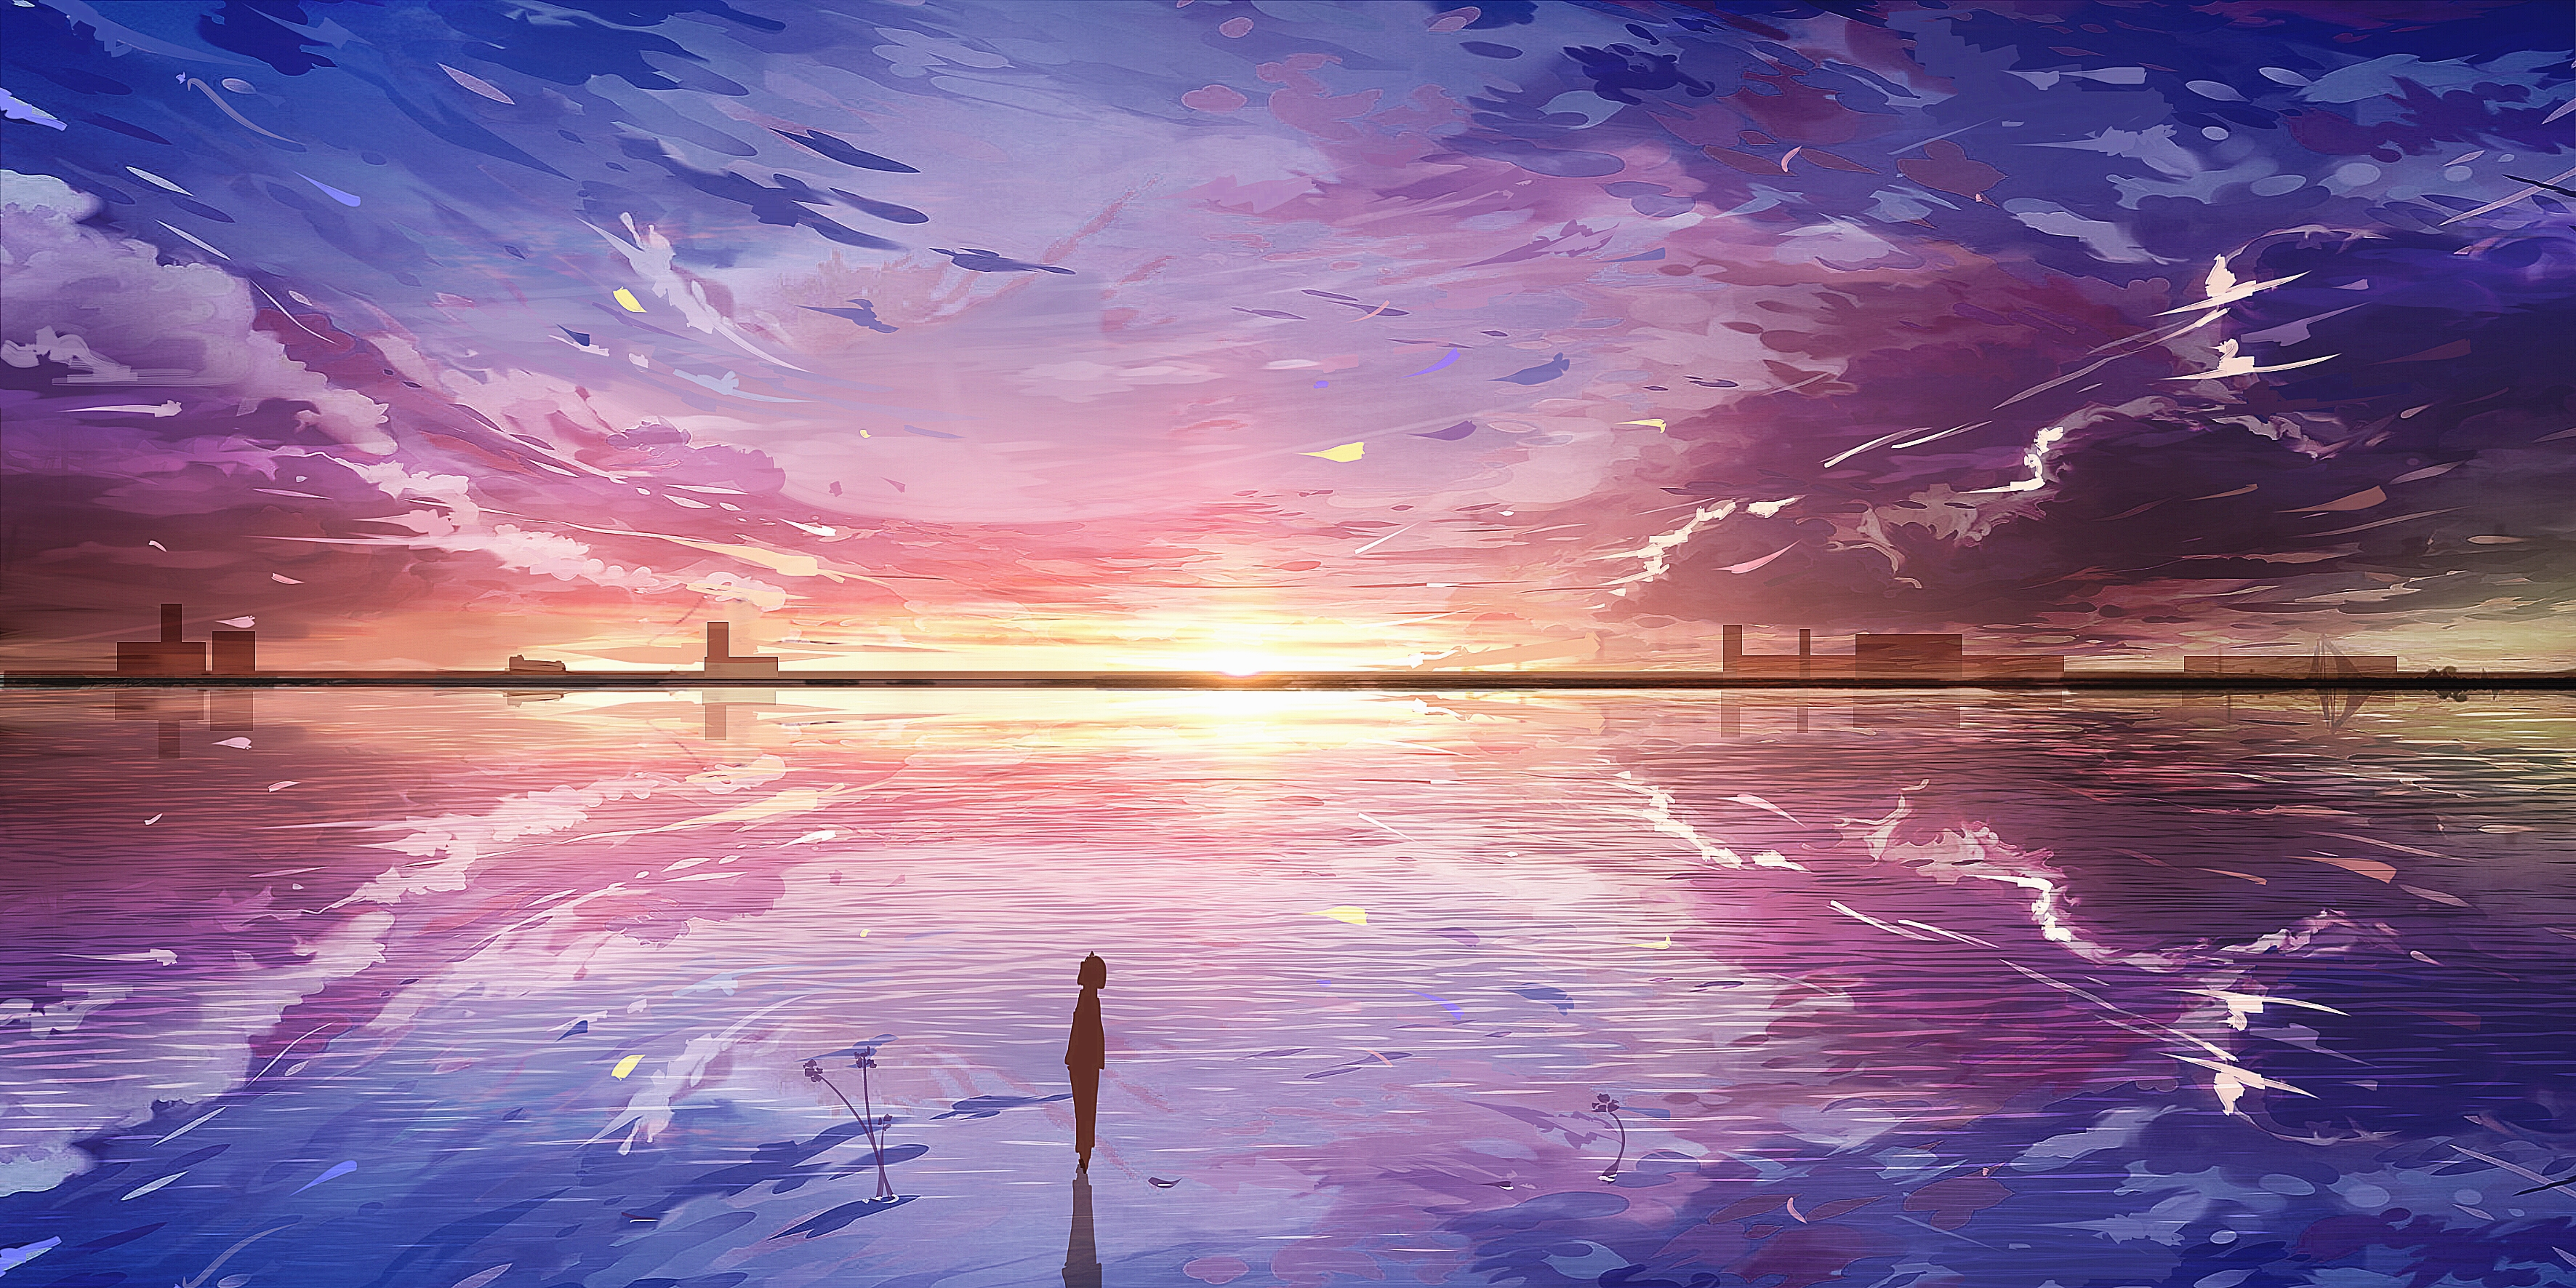 Anime Original Art 4k Hd Anime 4k Wallpapers Images Backgrounds Photos And Pictures